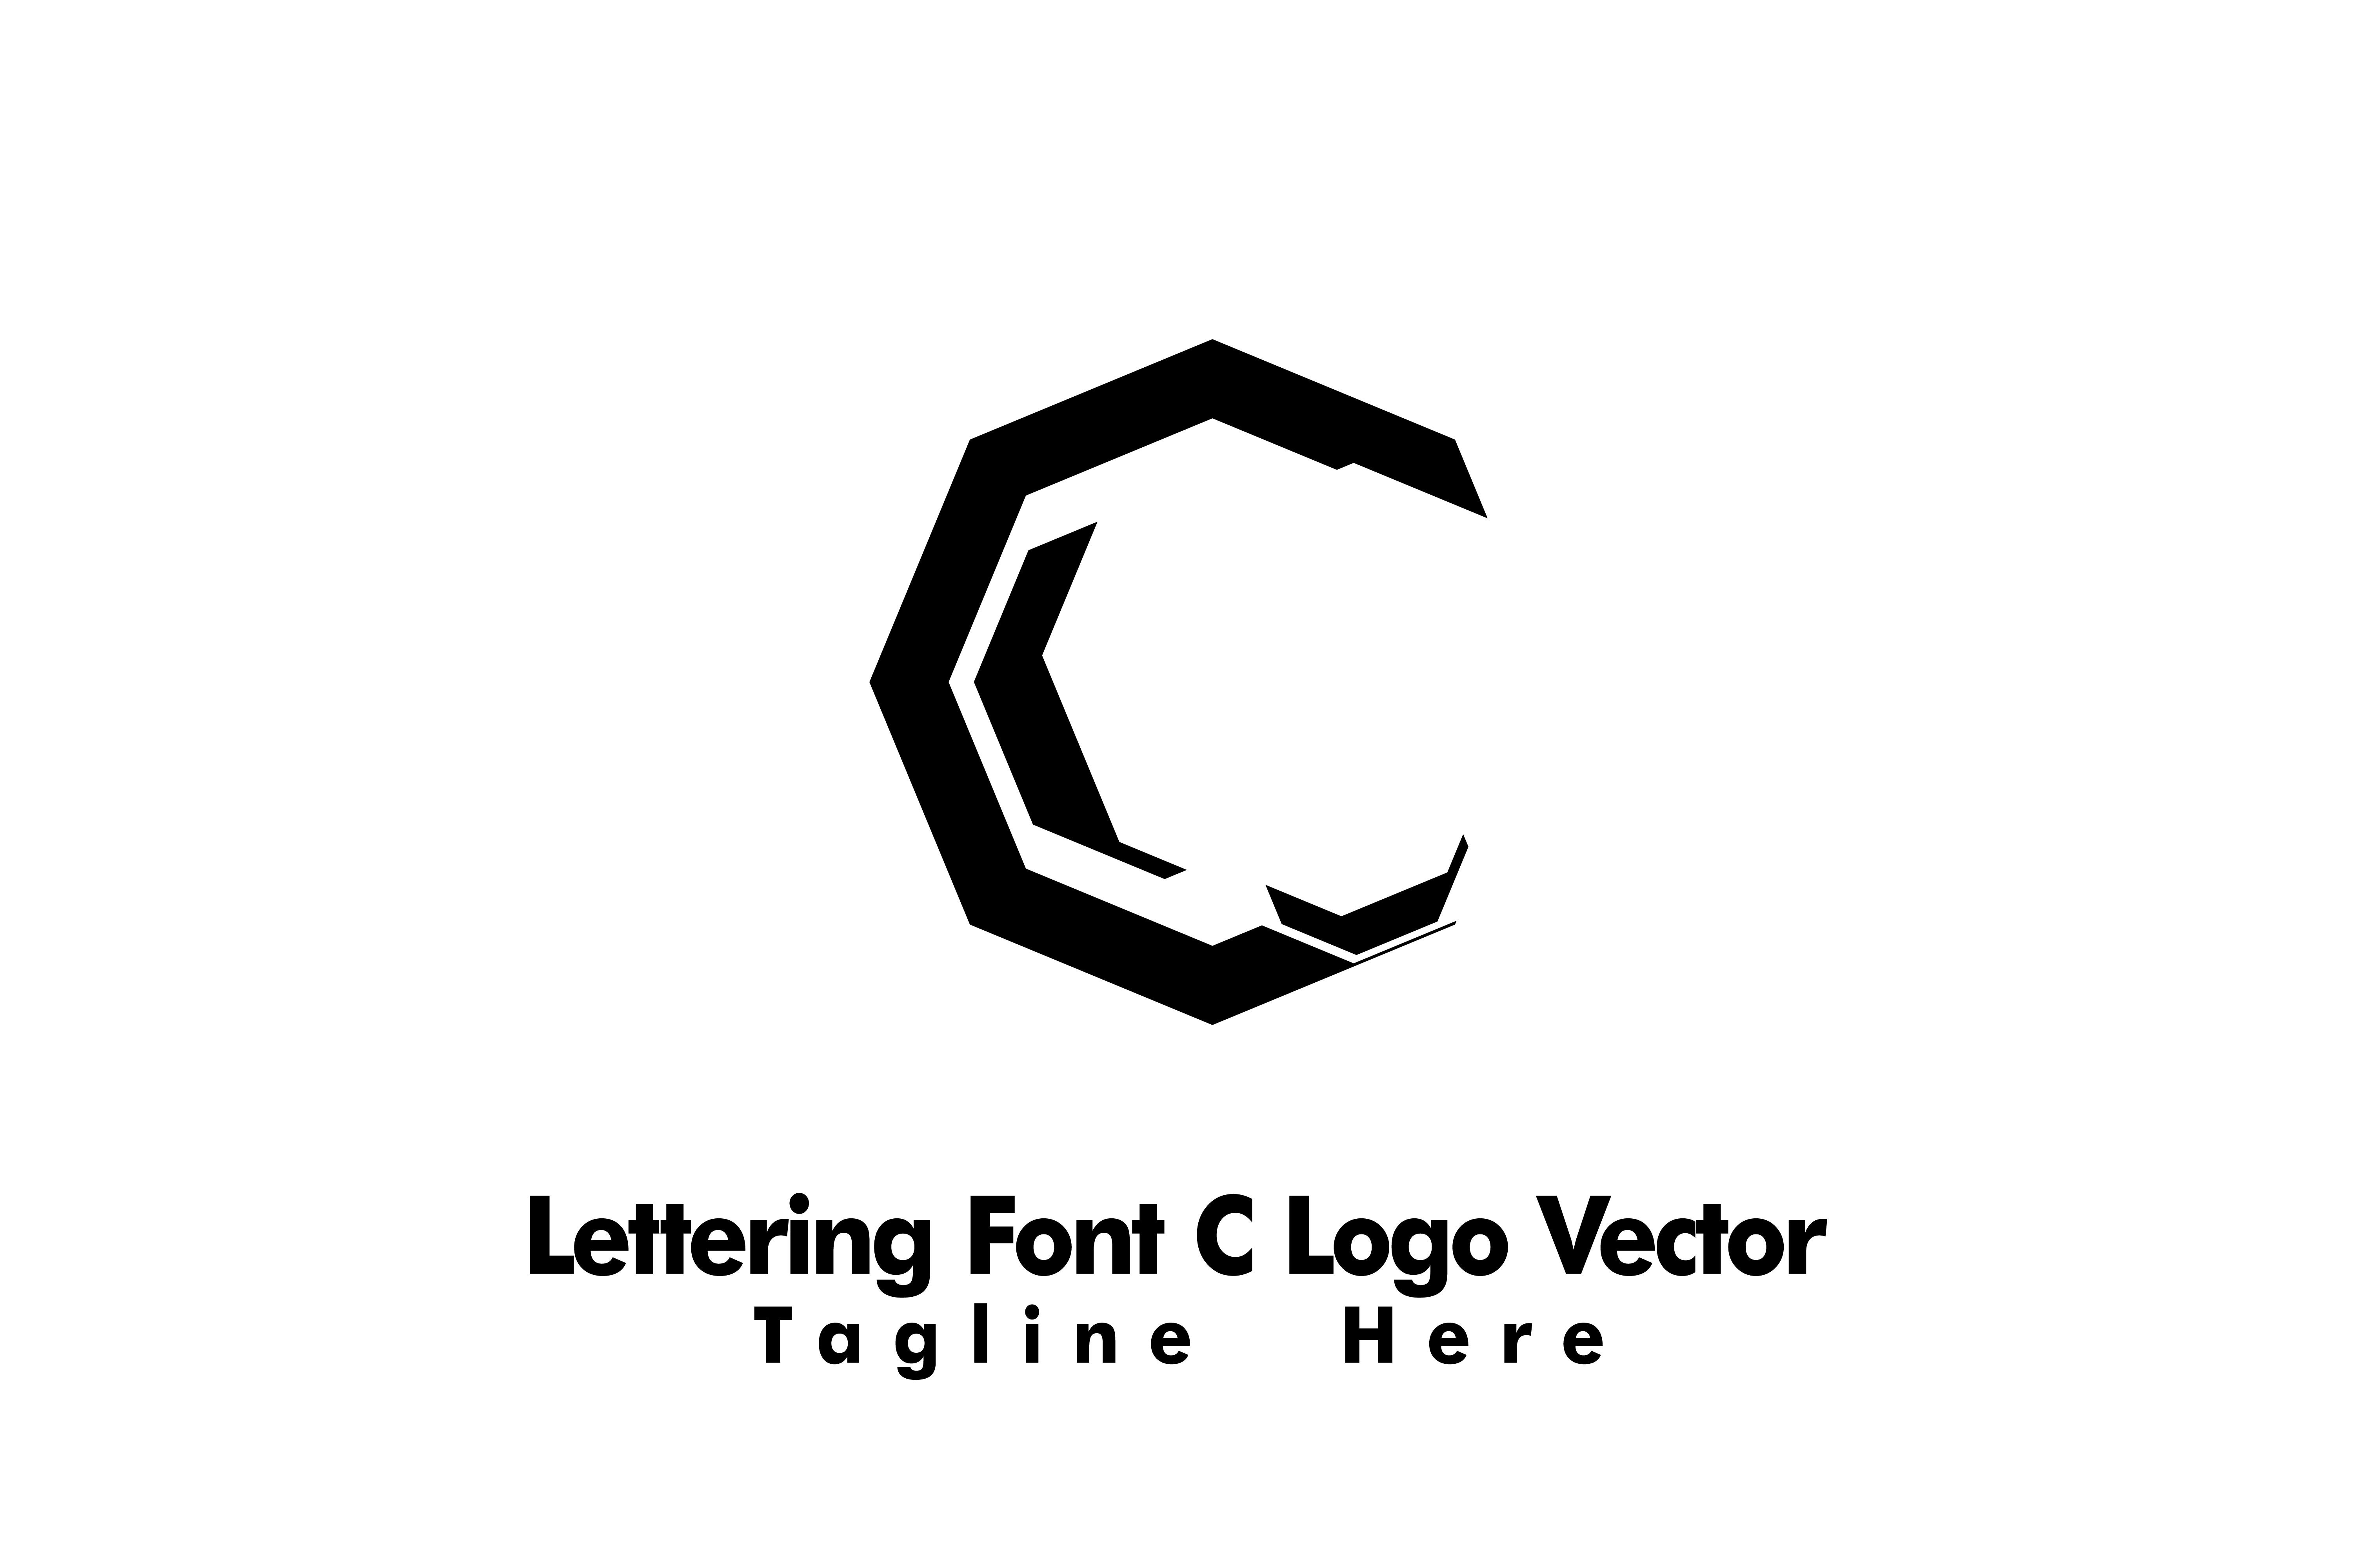 Lettering Font C Logo Vector (Graphic) by Yuhana Purwanti